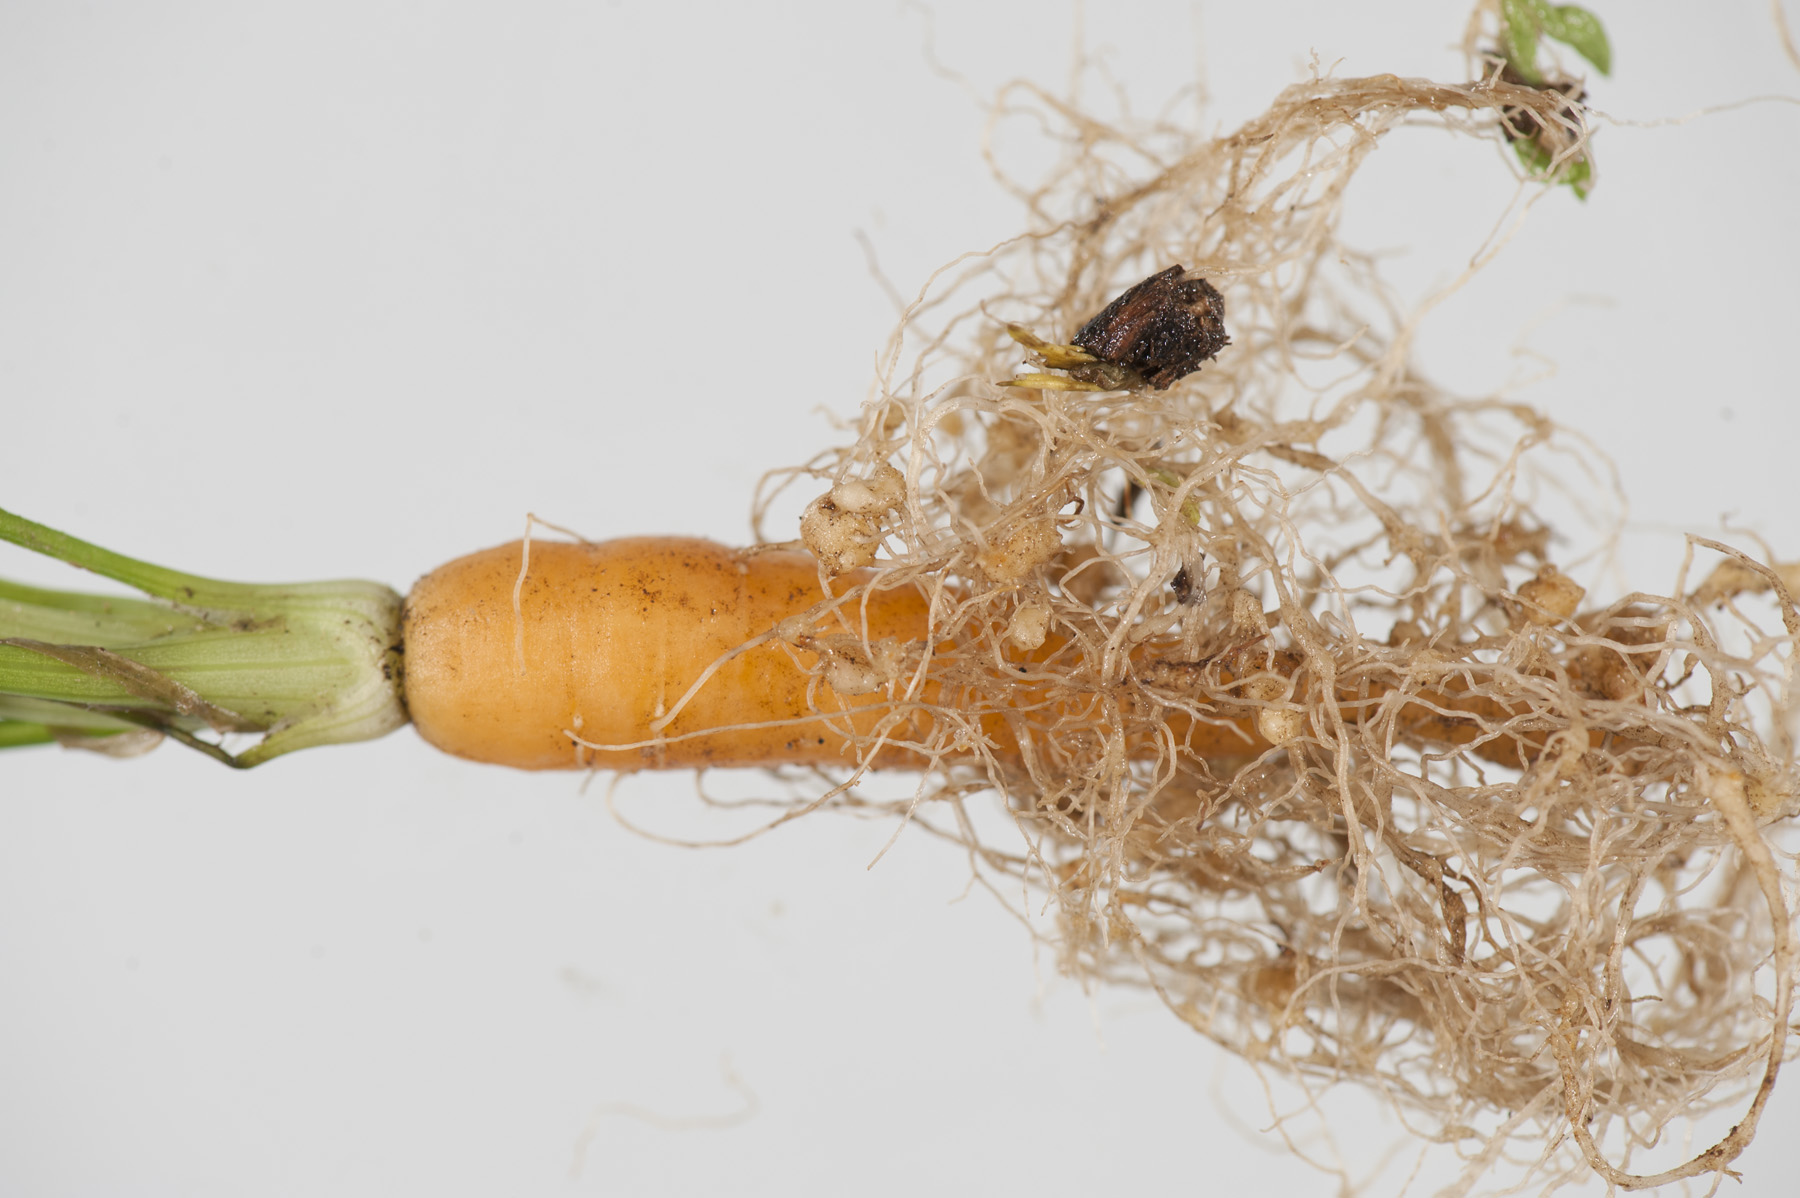 Nematodes | Agriculture and Food